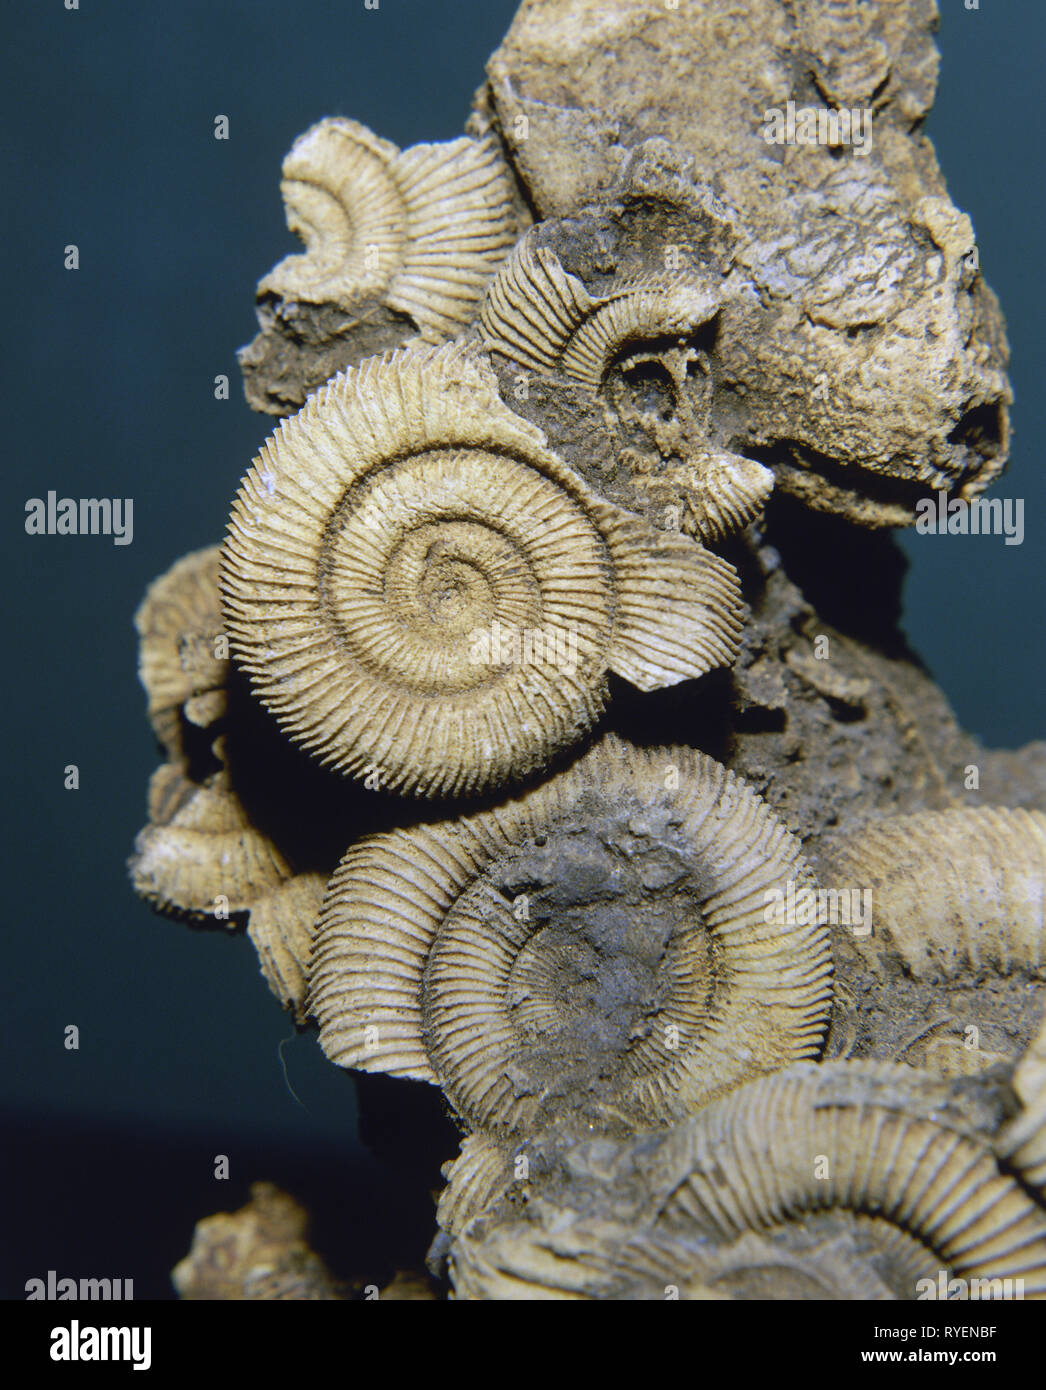 prehistory, fossilization, fossil, zoology, petrified ammonites, hippocampus, cephalopods, cretaceous age, Additional-Rights-Clearance-Info-Not-Available - Stock Image